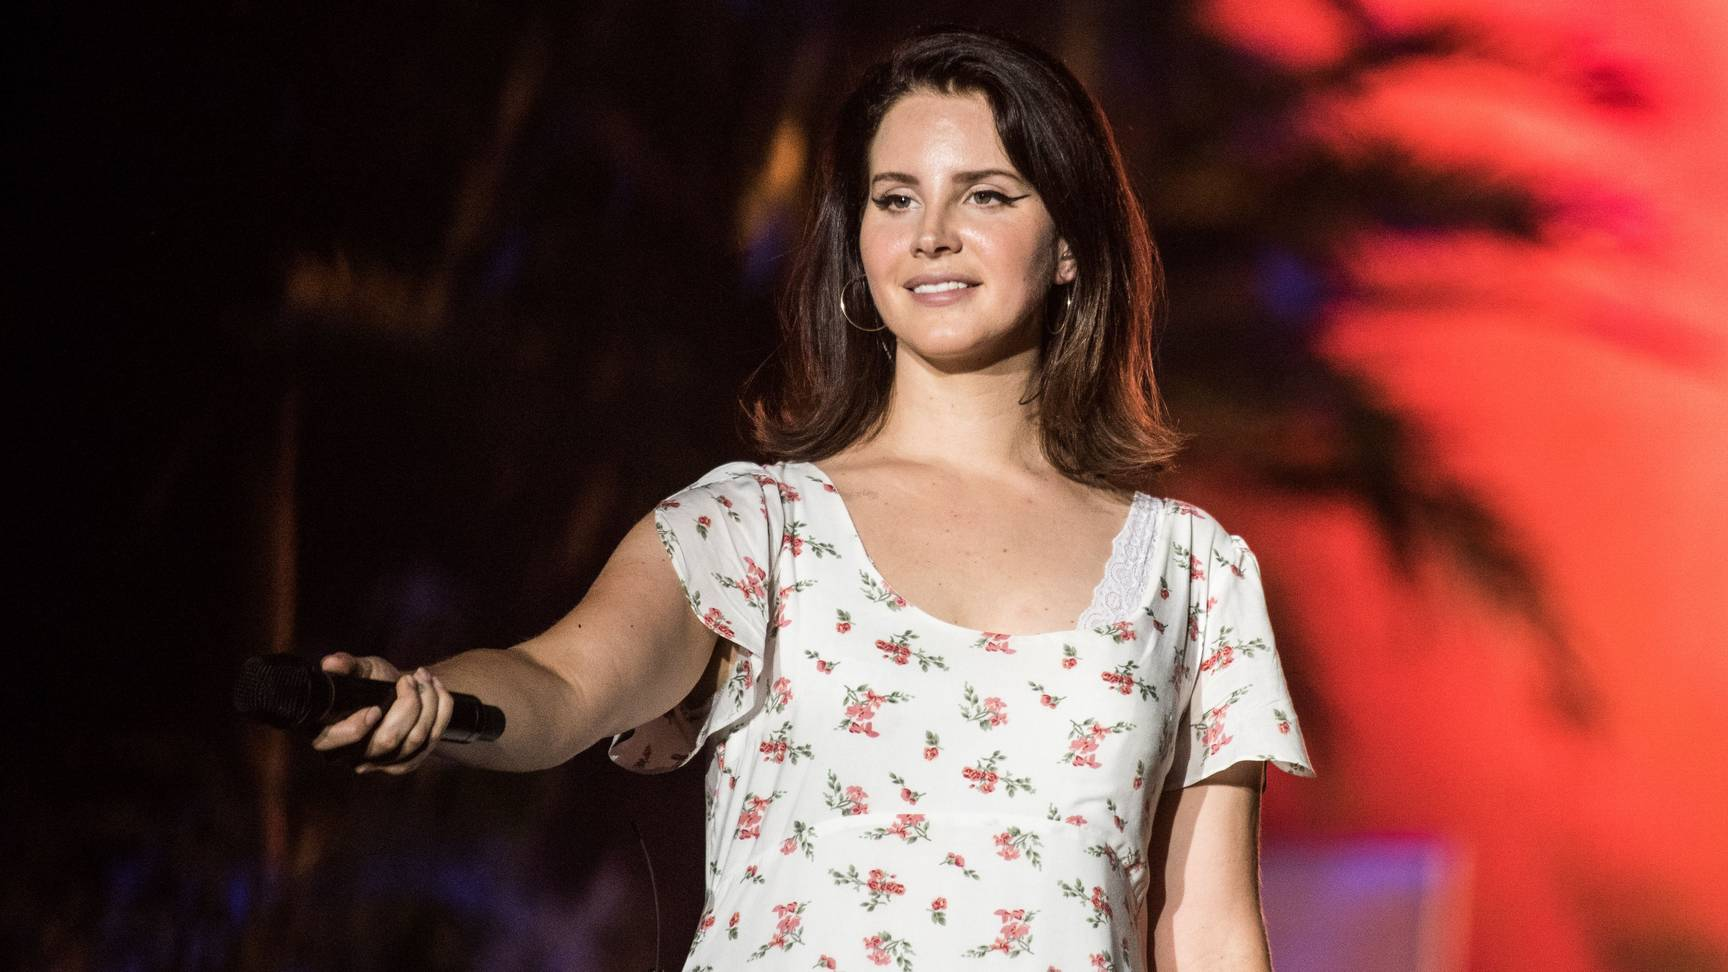 Lana Del Rey and Jack Antonoff team up for the dreary, sweet #MarinersApartmentComplex: https://t.co/oegu8ts3PV https://t.co/9c9OZMvOtr